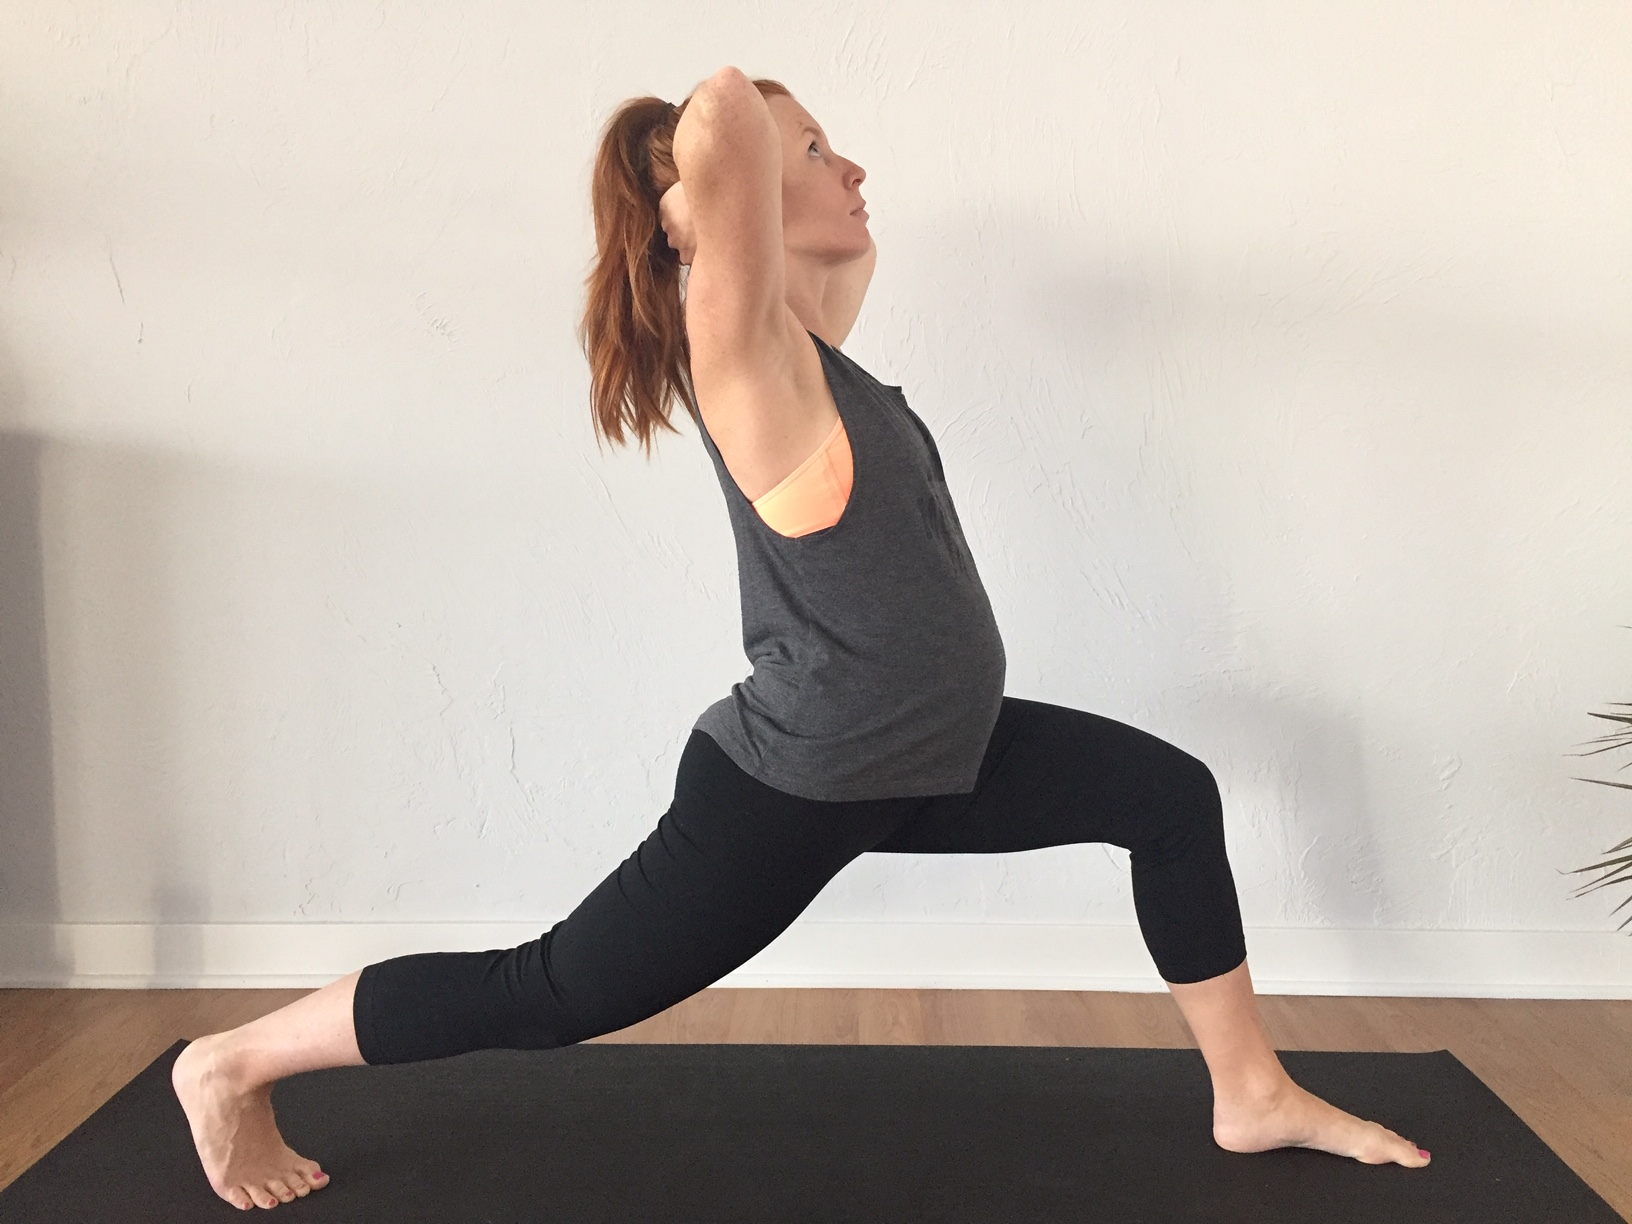 Practice a lunge in good alignment by drawing the rib cage back and keeping the head and ribs in line with the pelvis.